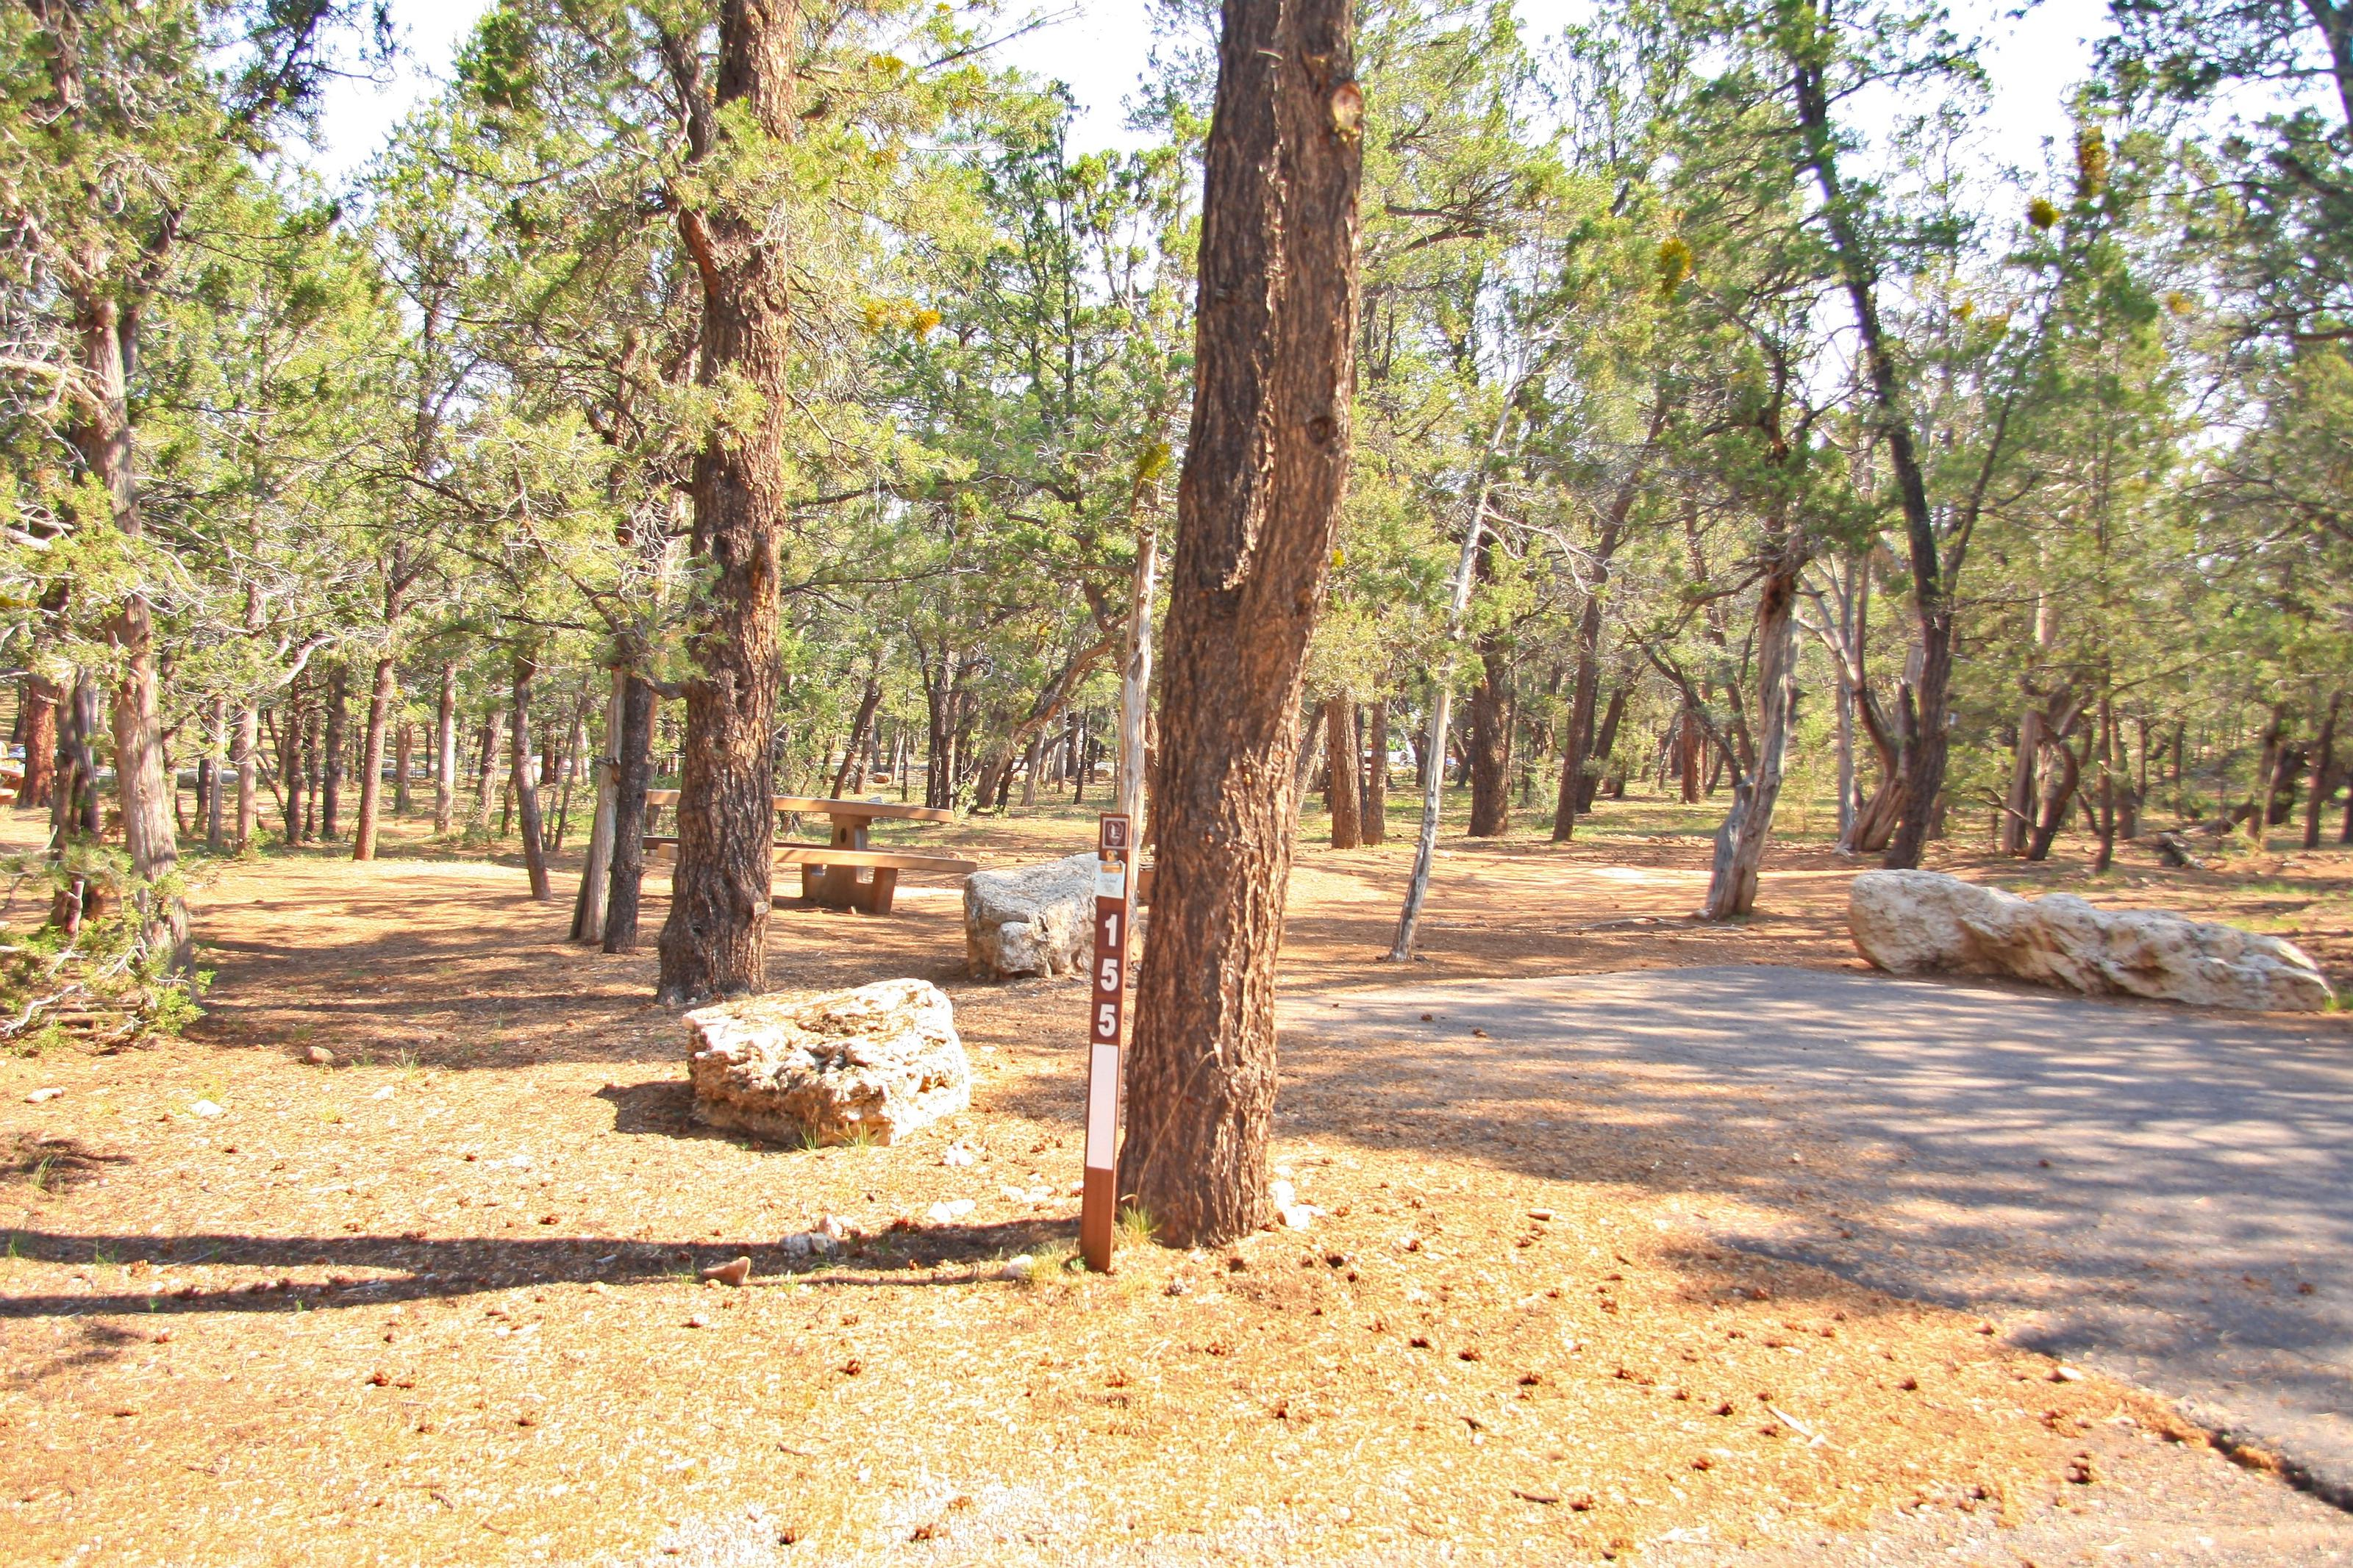 Picnic table and parking spot, Mather CampgroundPicnic table parking spot for Juniper Loop 155, Mather Campground